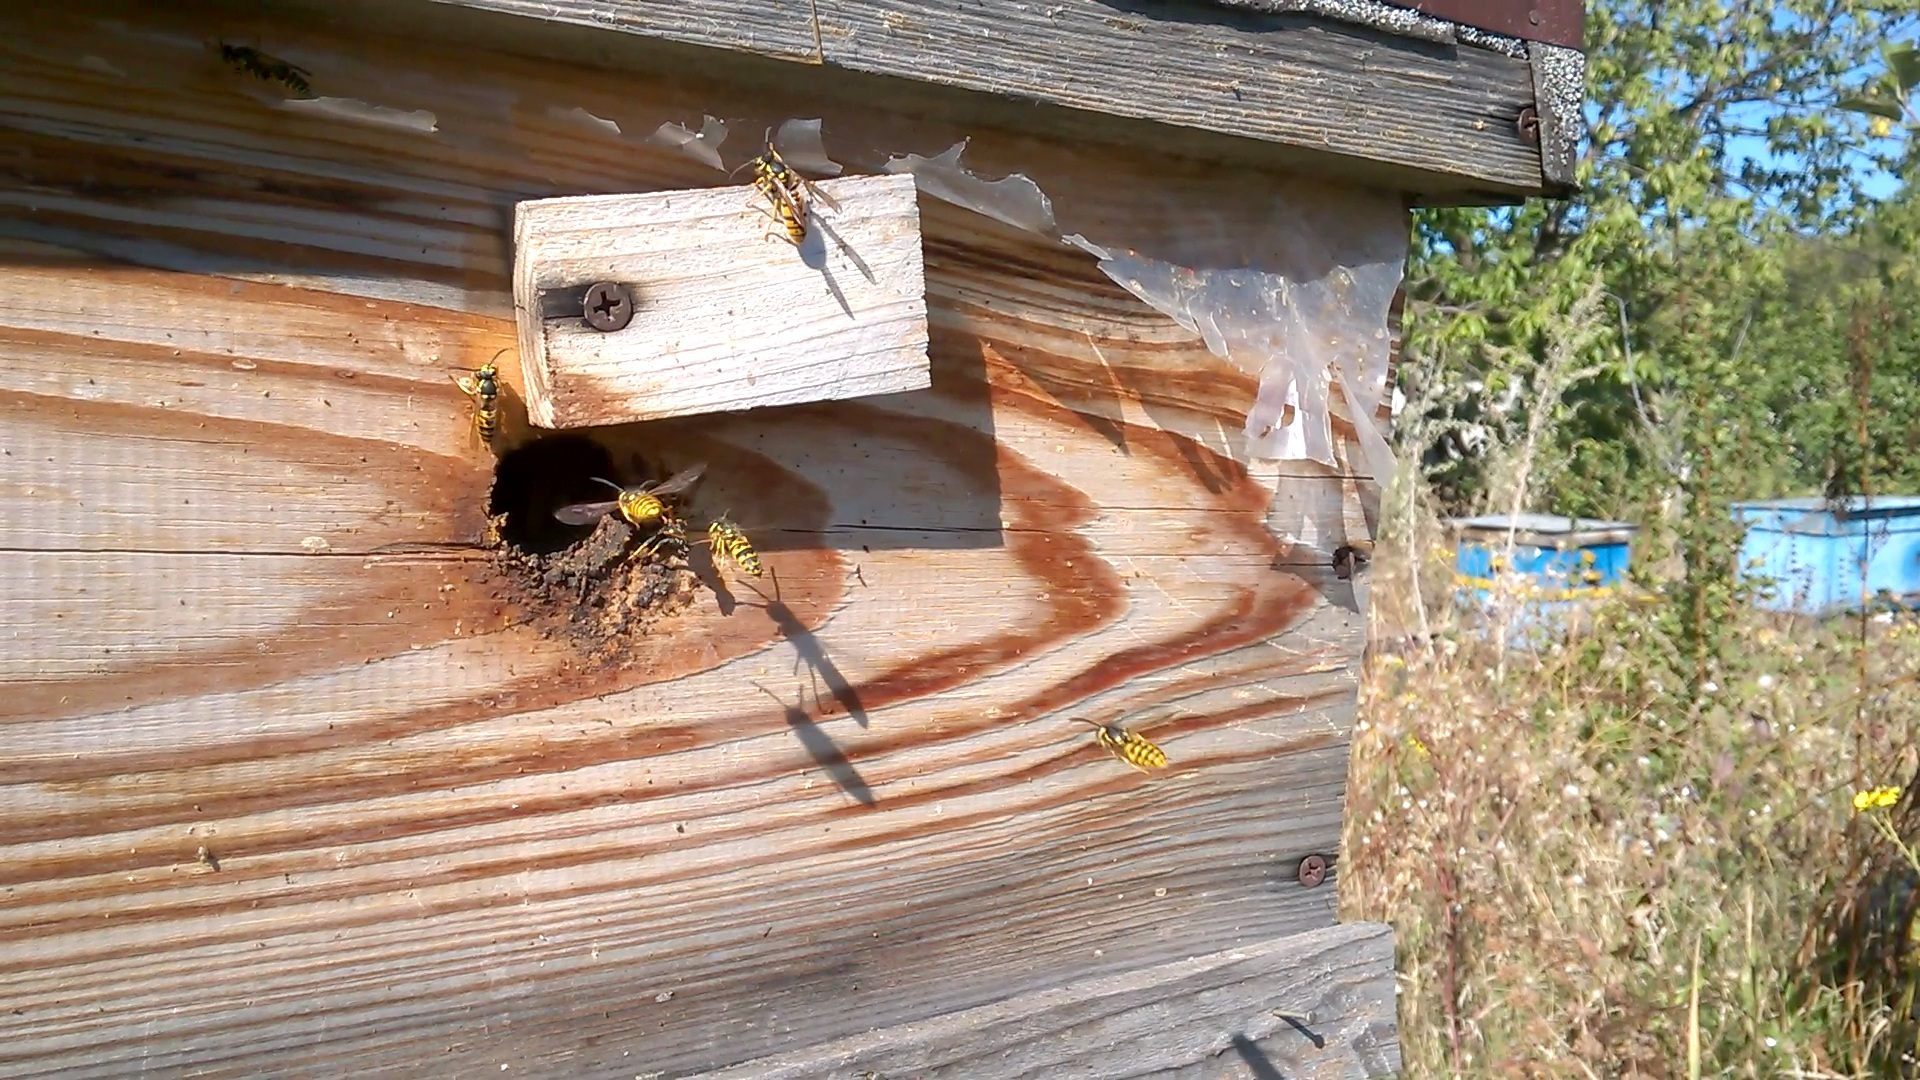 Осы и пчелиная пасека. Wasp and bee apiary